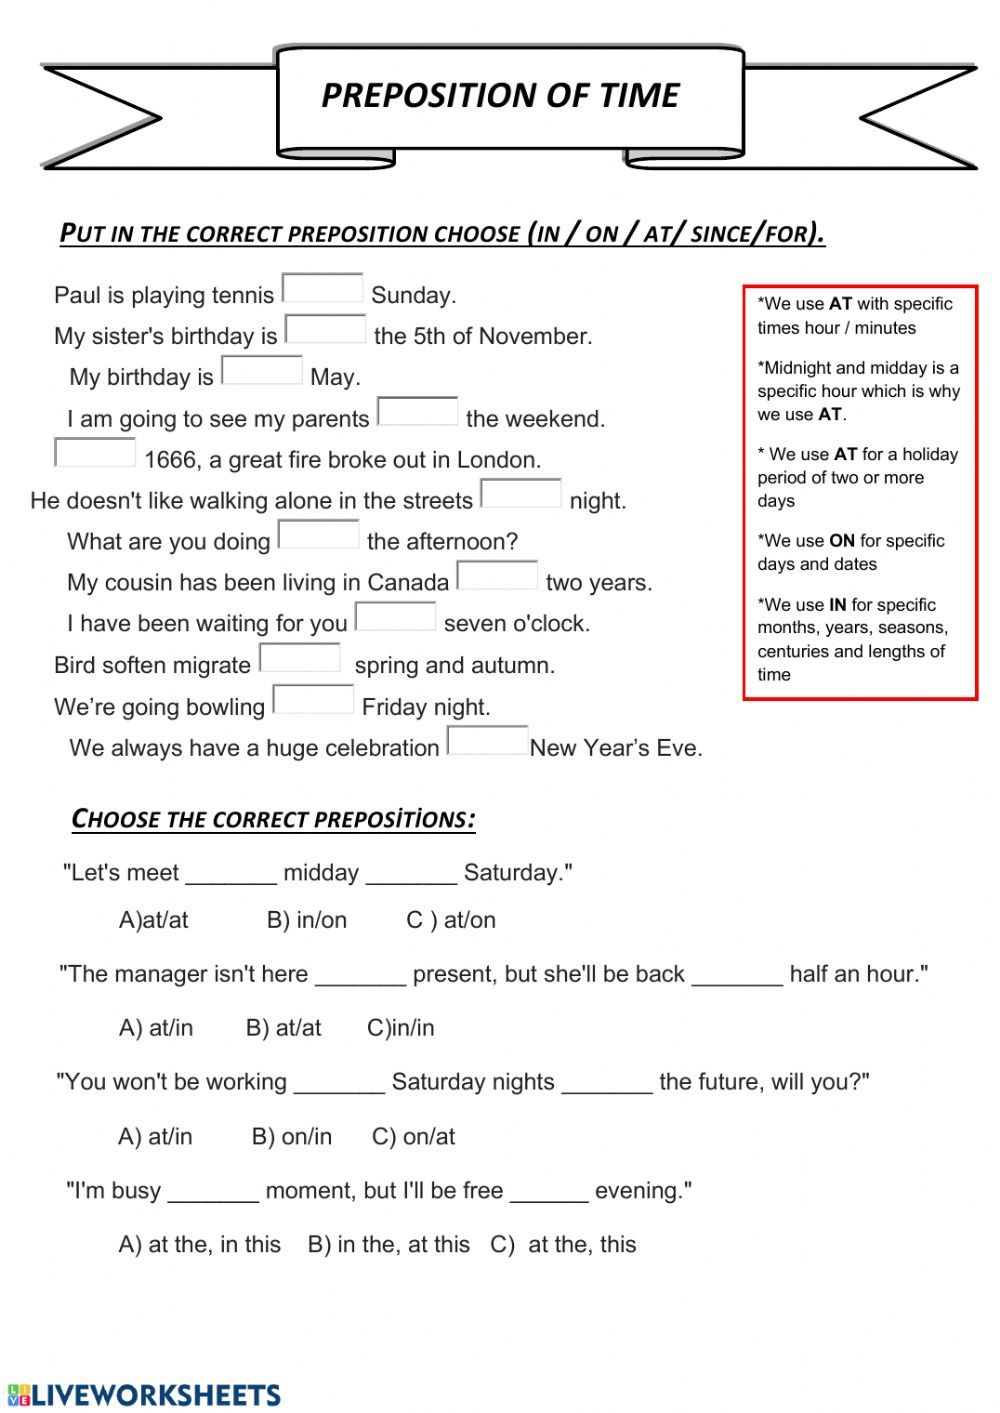 Preposition Of Time Interactive Worksheet In 2020 English As A Second Language Prepositions English Language Teaching